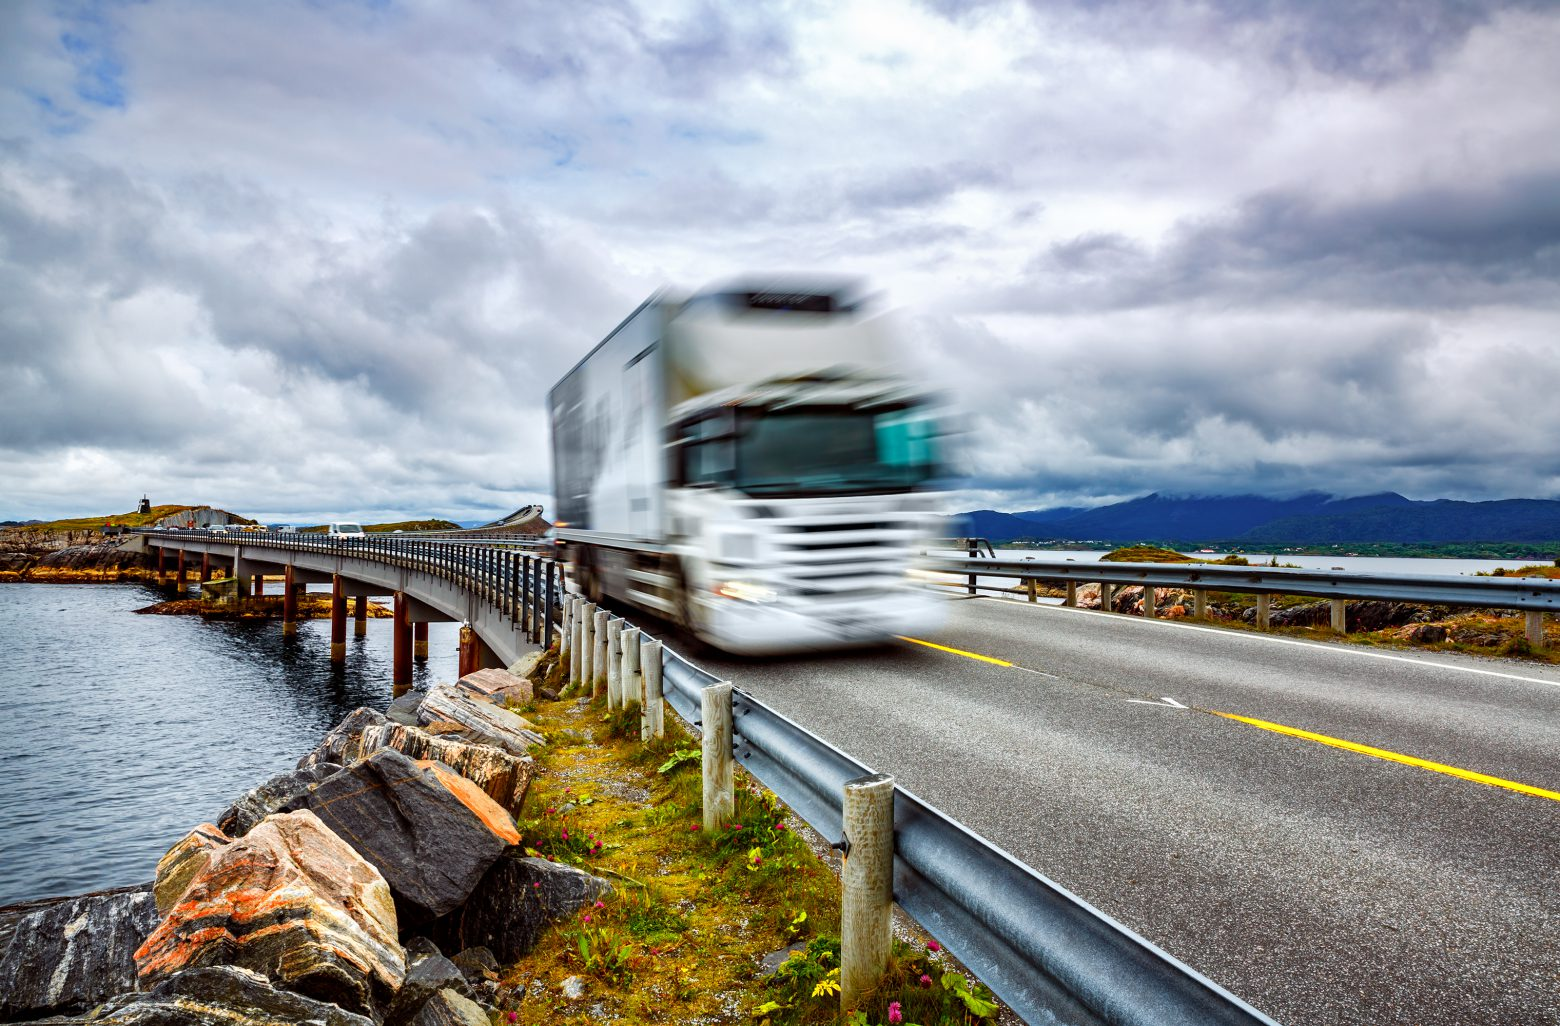 """Truck and highway at sunset. Truck Car in motion blur. Atlantic Ocean Road or the Atlantic Road (Atlanterhavsveien) been awarded the title as """"Norwegian Construction of the Century""""."""